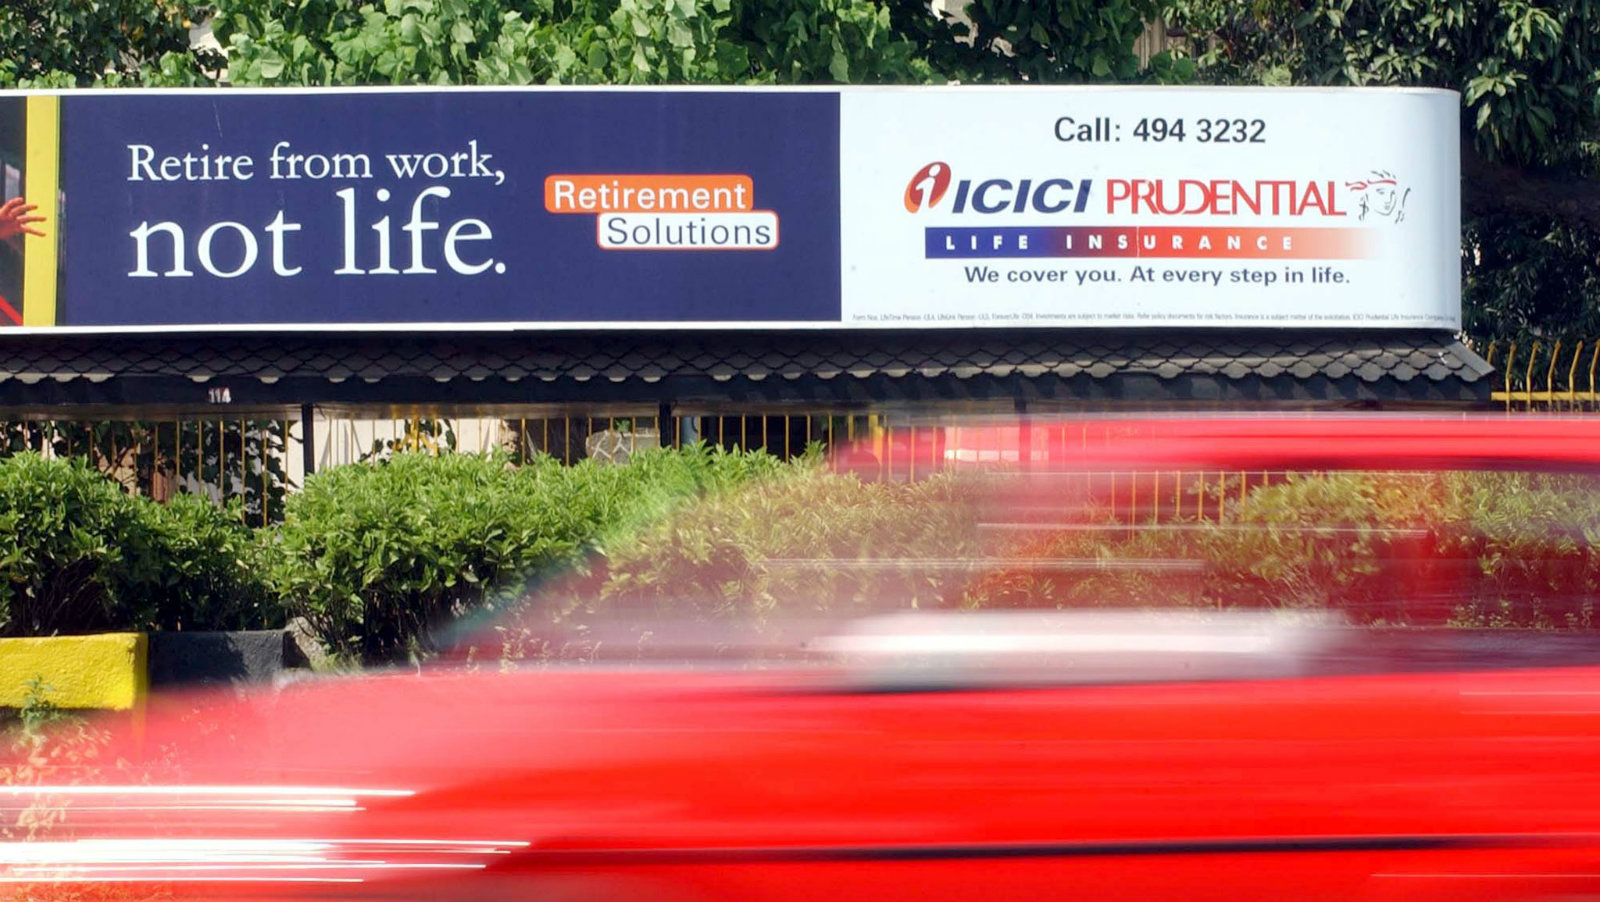 A vehicle passes a life insurance bill board of Prudential-ICICI, in Bombay September 30, 2002. Life insurance Prudential PLC (PUK) said on Monday that it would cut 805 jobs - or 11% of its U.K. workforce - and outsource functions to a new offshore call center in India, in a continued effort to cut costs. ICICI is the Indian partner of Prudential PLC (PUK).